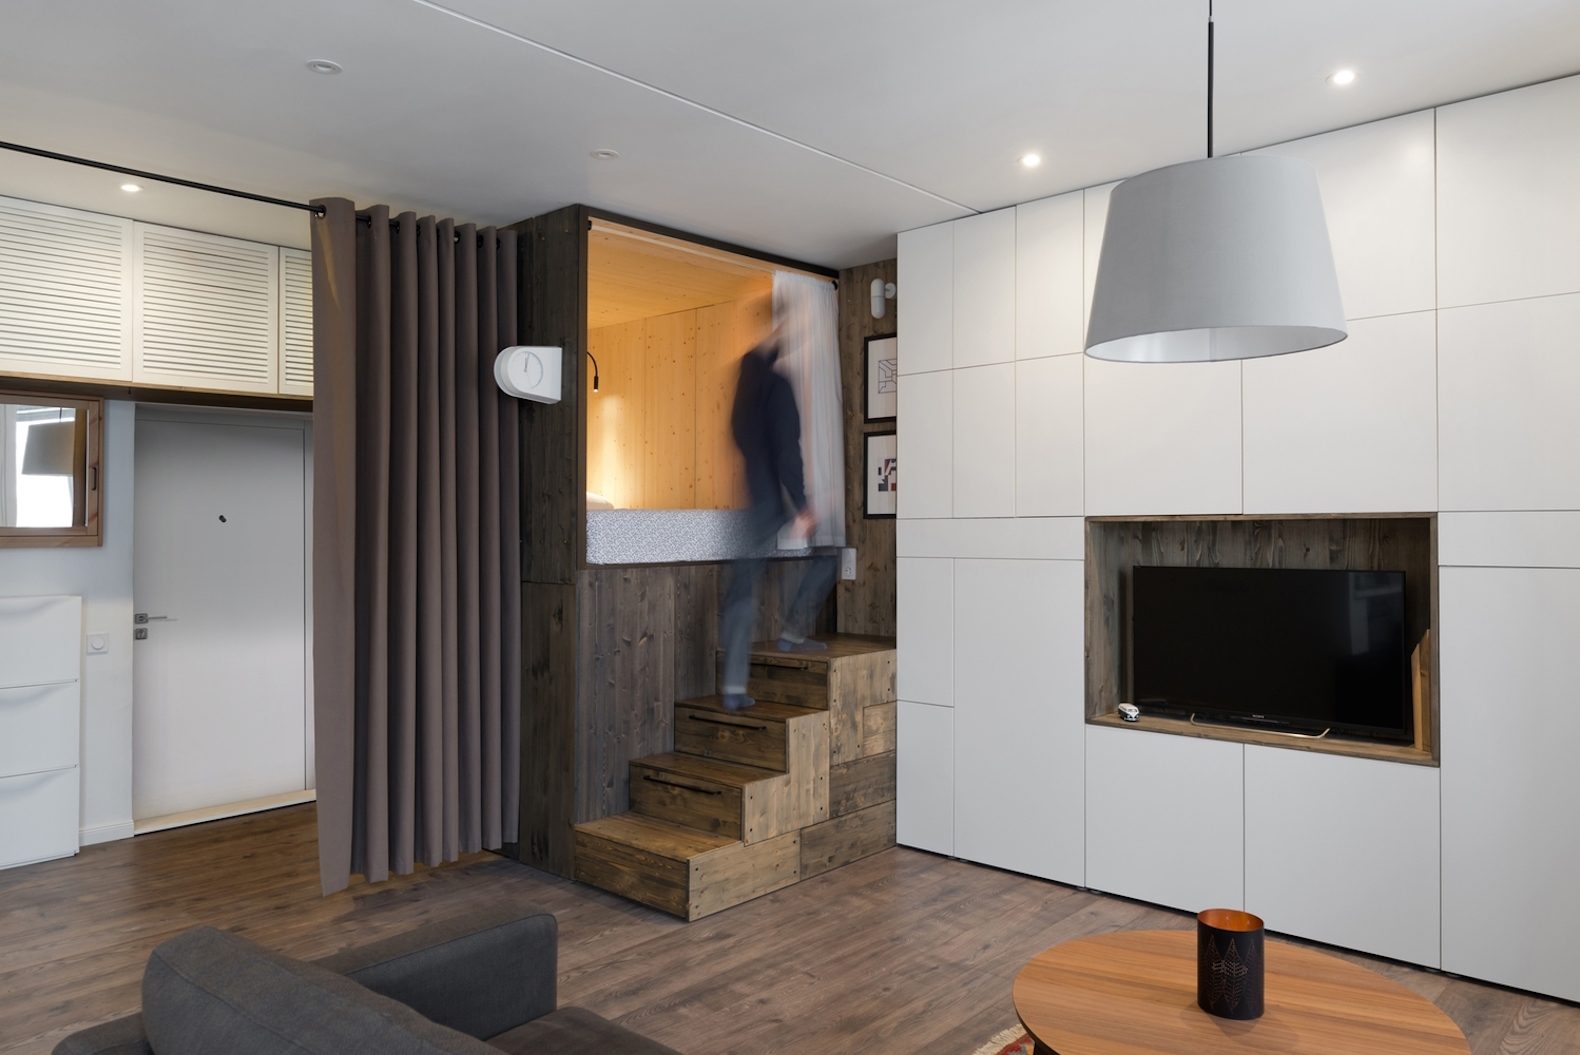 Cleverly designed bed makes this tiny home feel bigger than its 35-square-meter footprint